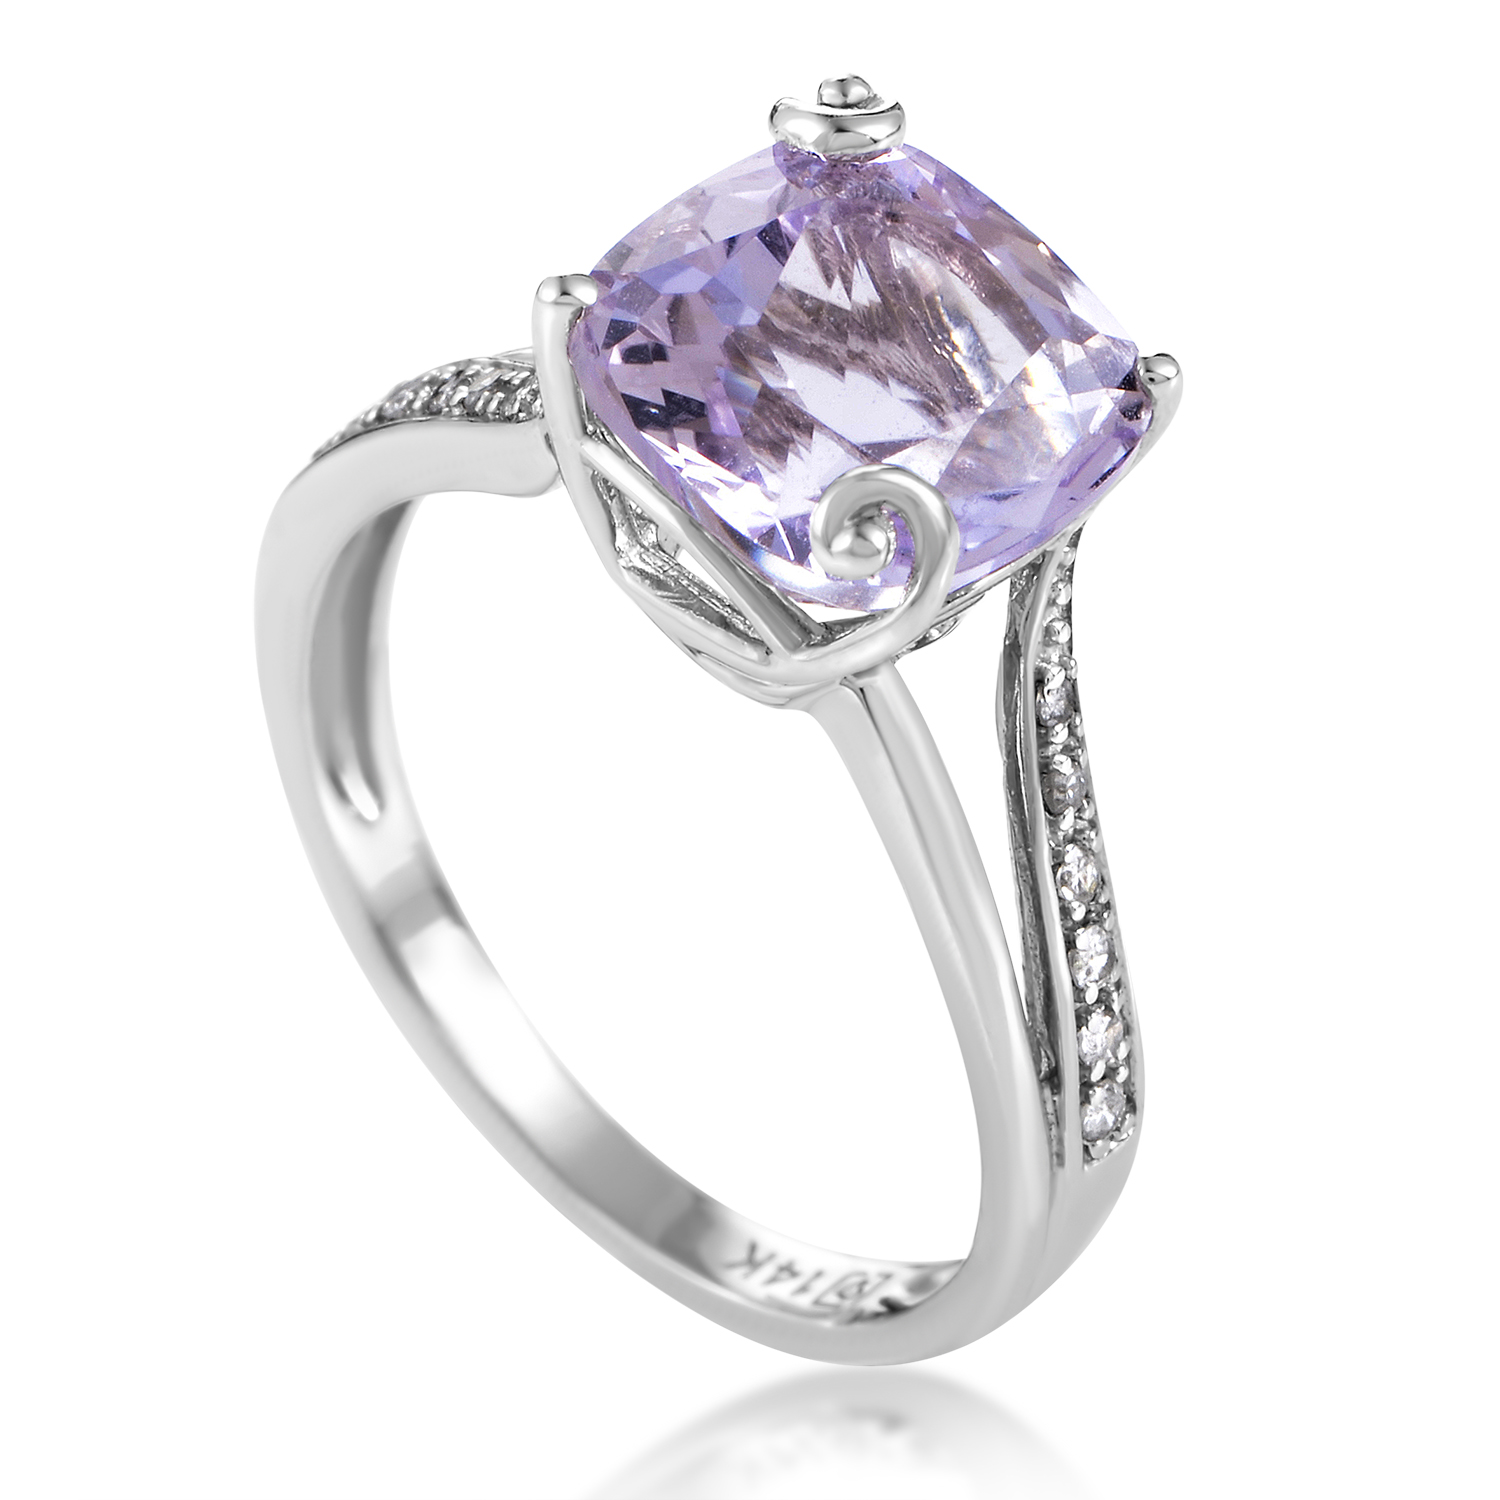 Women's 14K White Gold Diamond & Amethyst Ring RC4-10040WAM